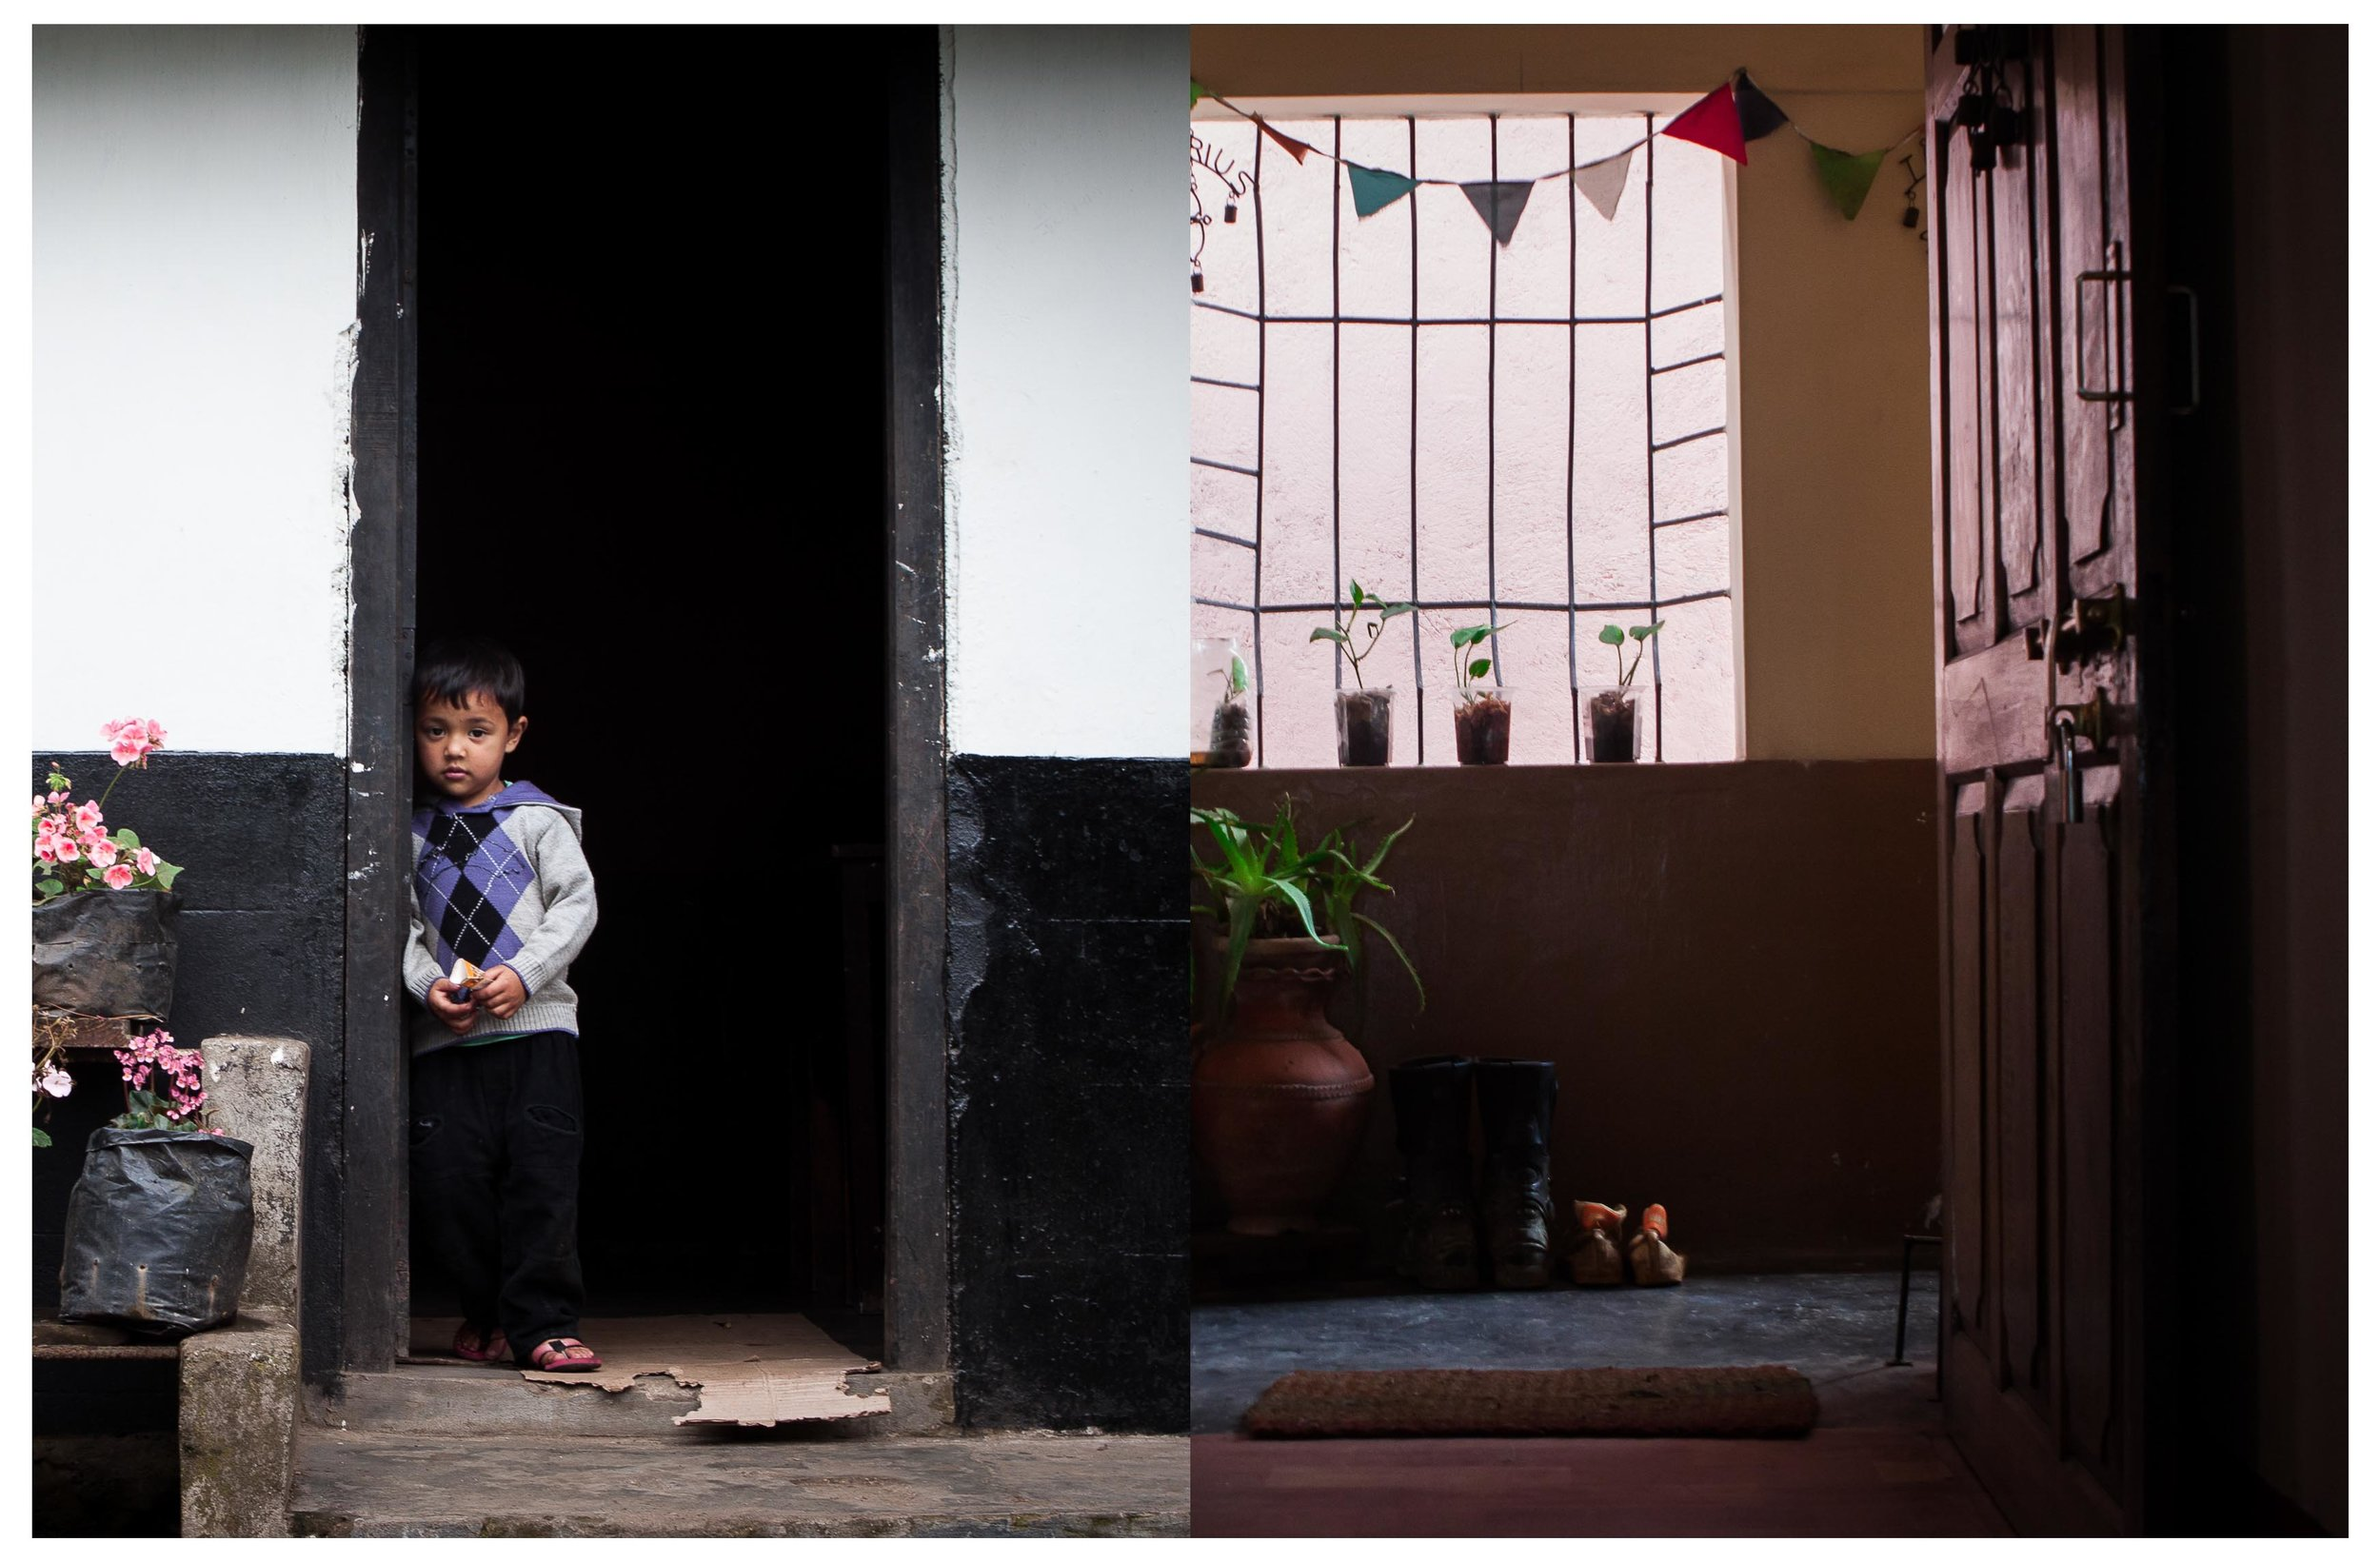 The entrance of two different houses, one  in Shillong, Meghalaya and the other in Kohima, Nagaland;  almost merging together like one.©Tanushree Singh